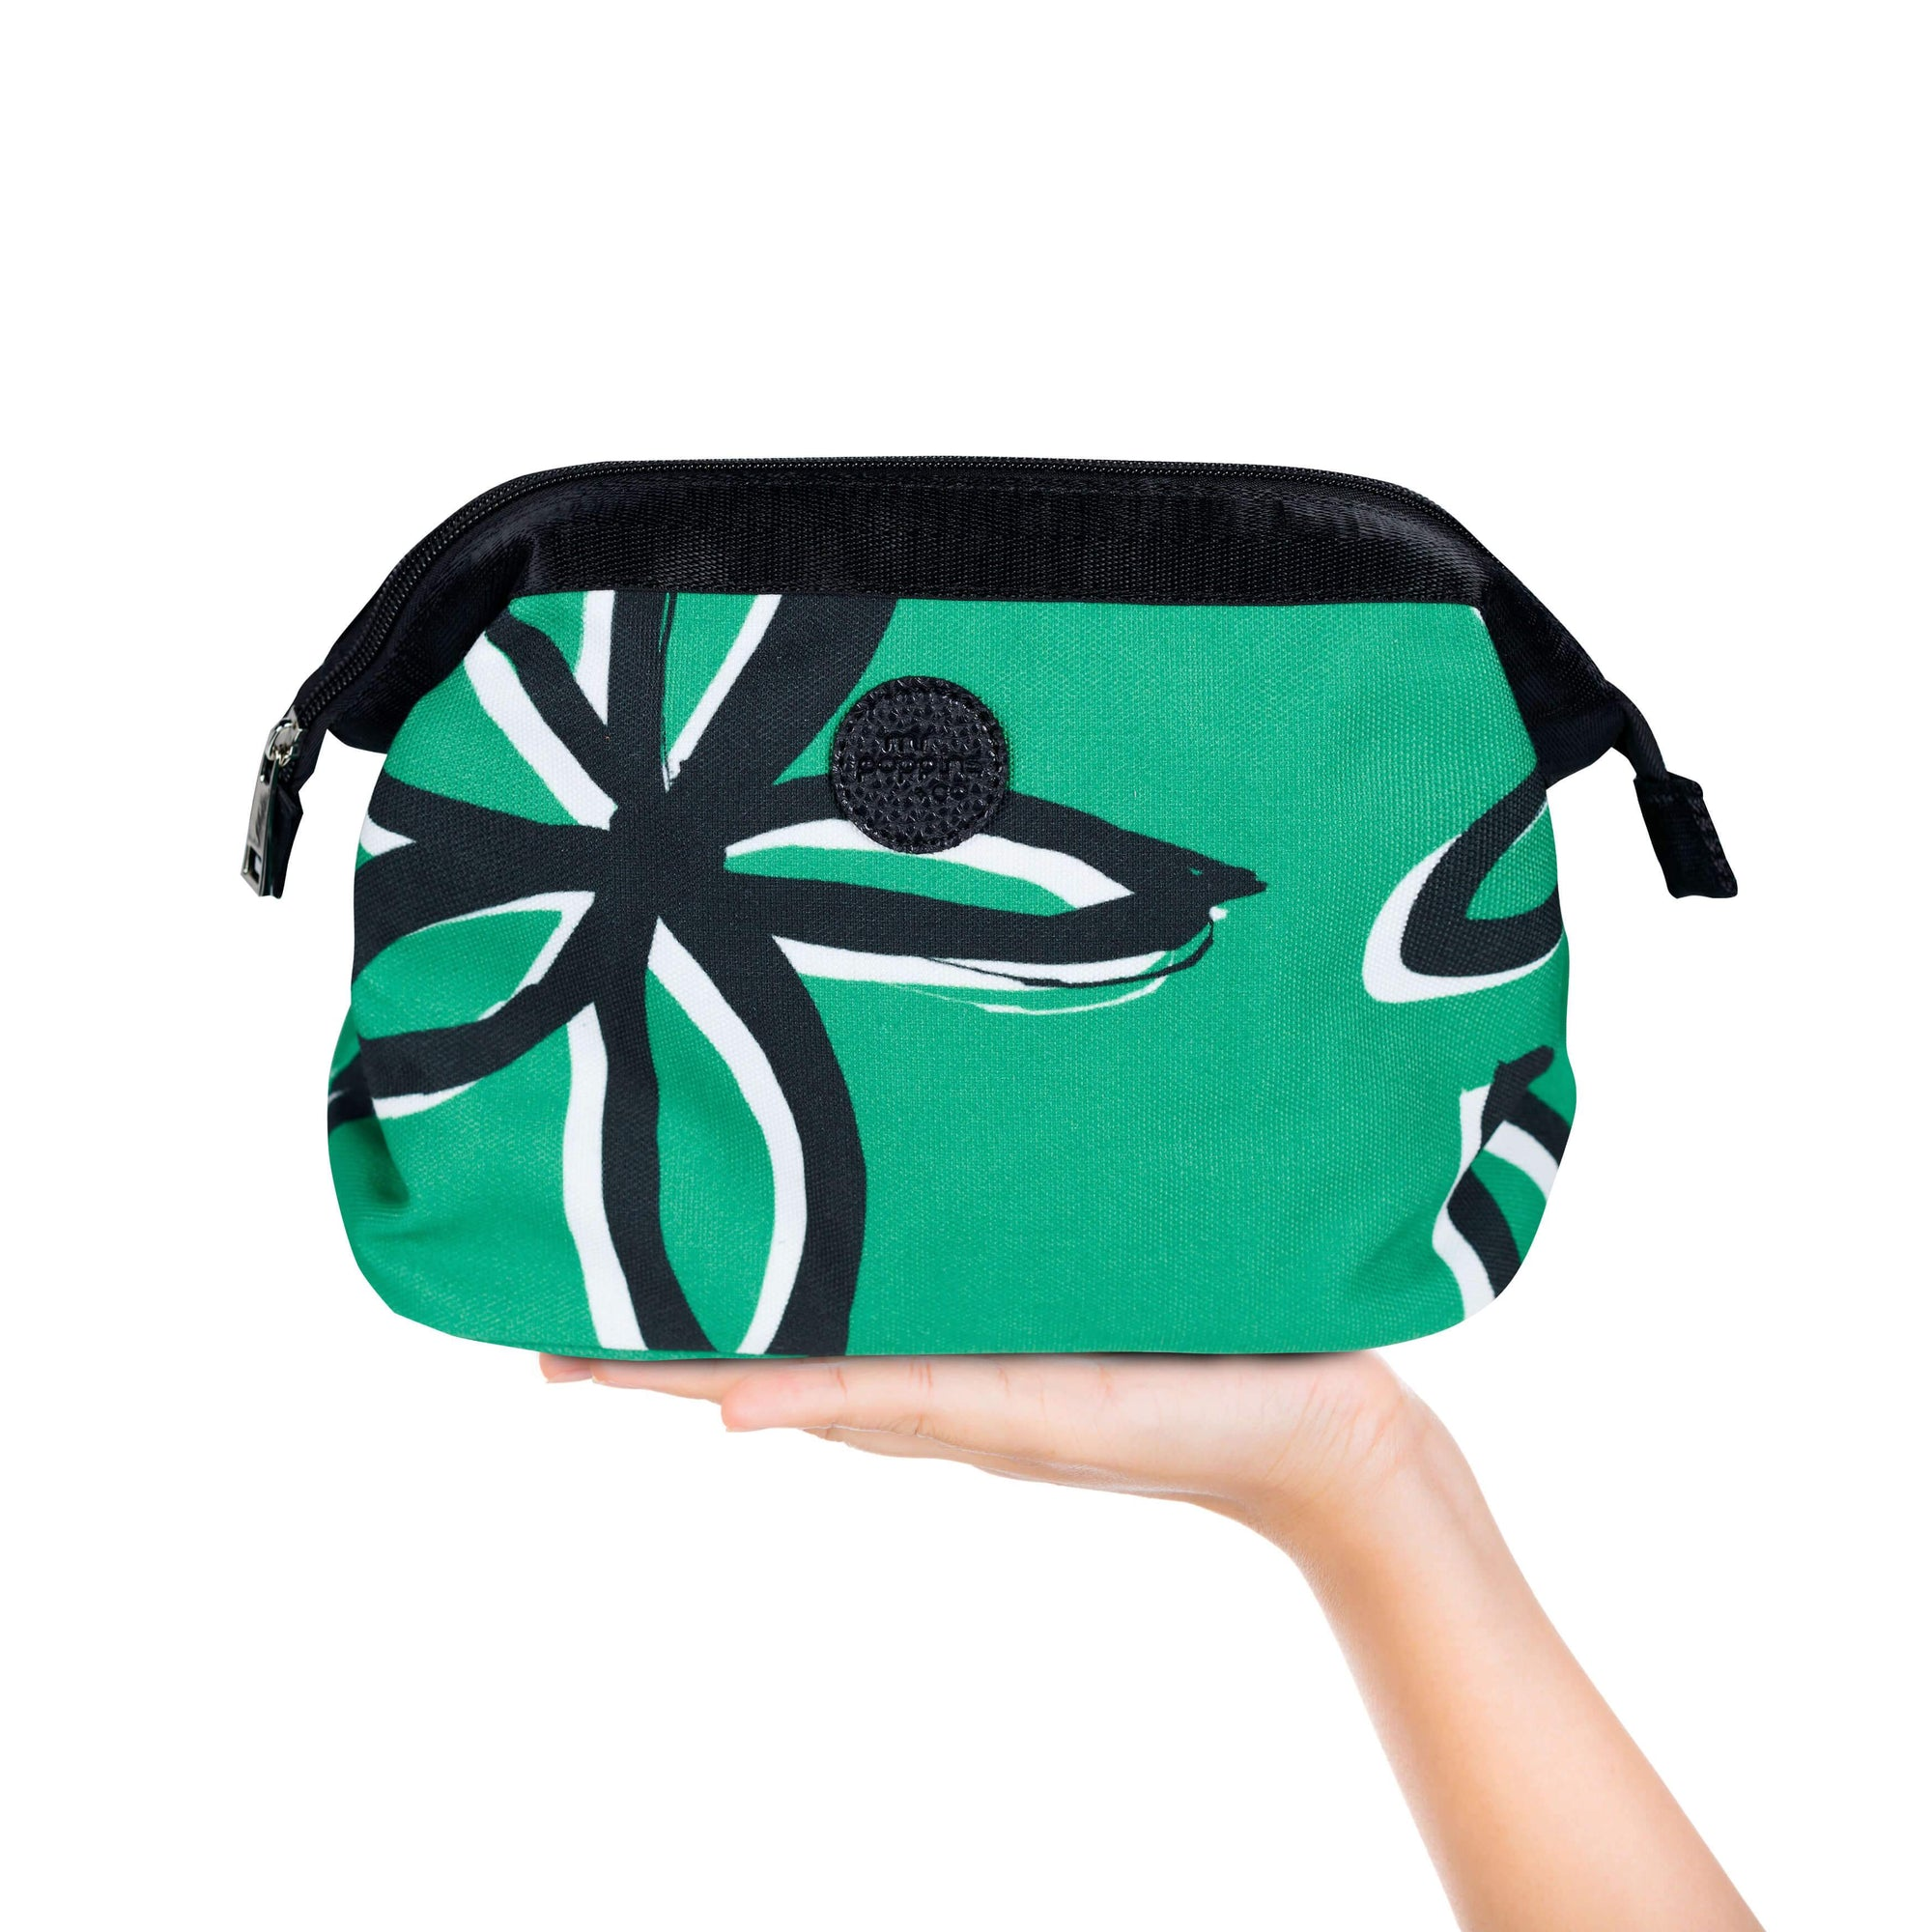 Makeup or cosmetic bag for travel in classic Emerald colour